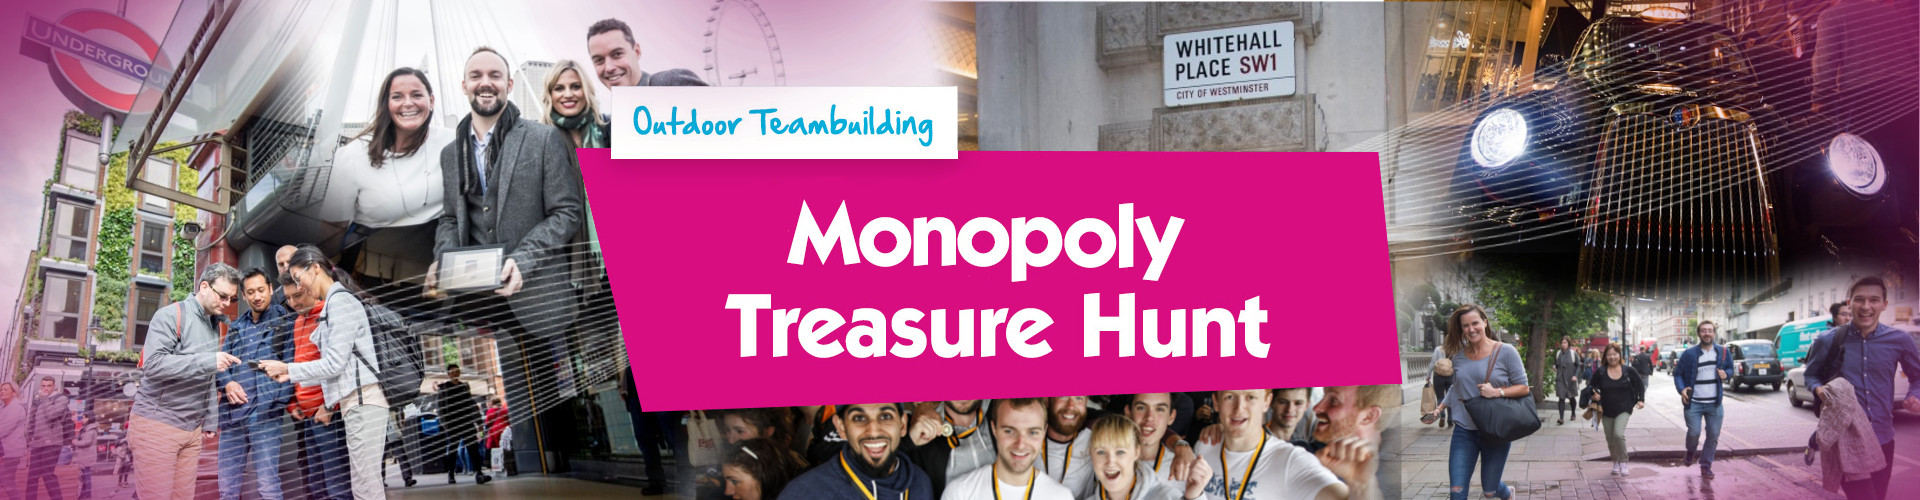 Monopoly Treasure Hunt Banner